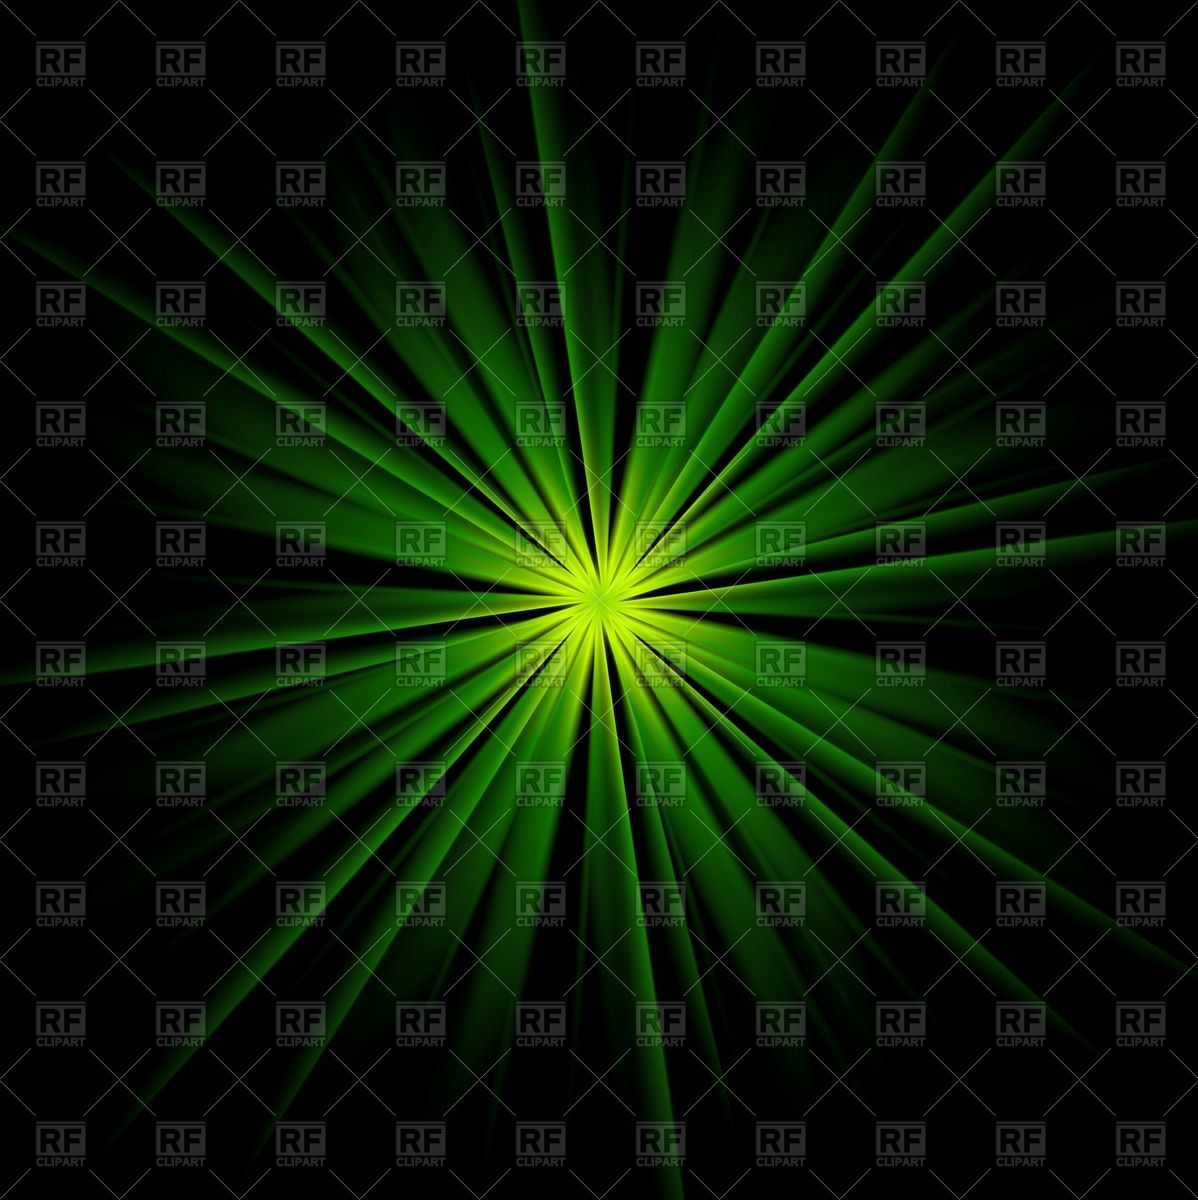 Dark green beams abstract background Vector Image #95113.